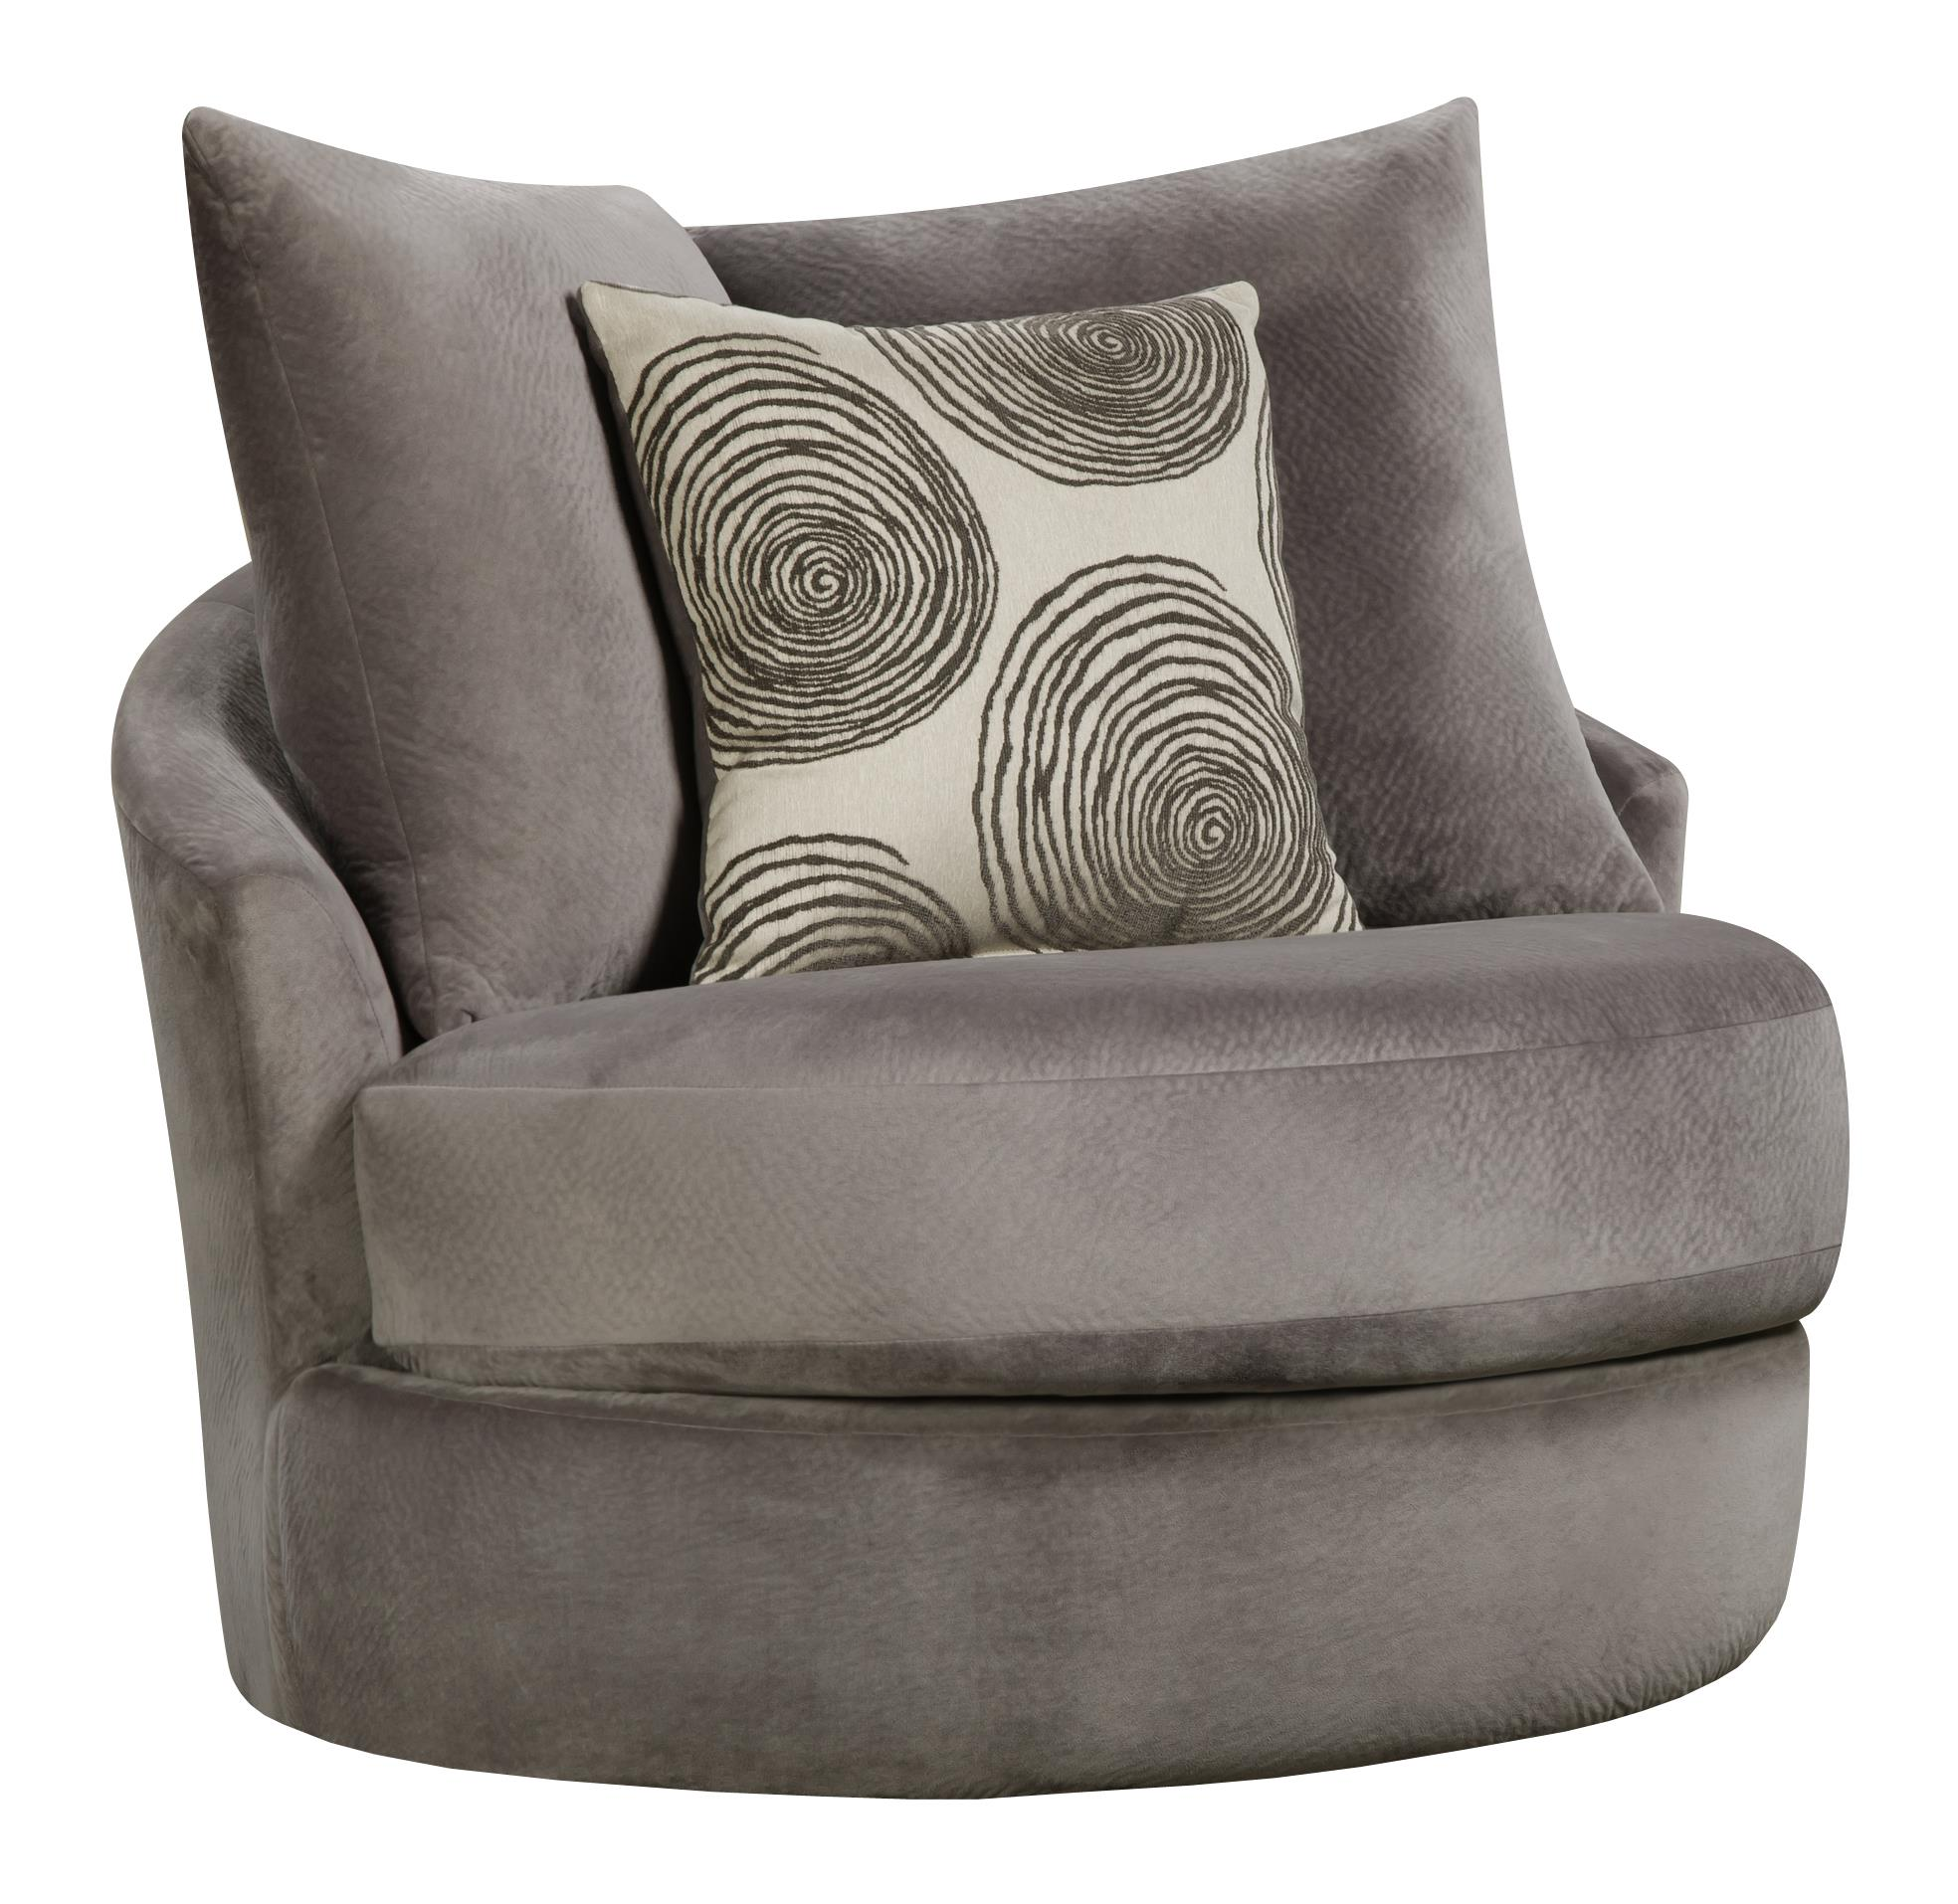 Swivel Chair With Contemporary Style By Corinthian